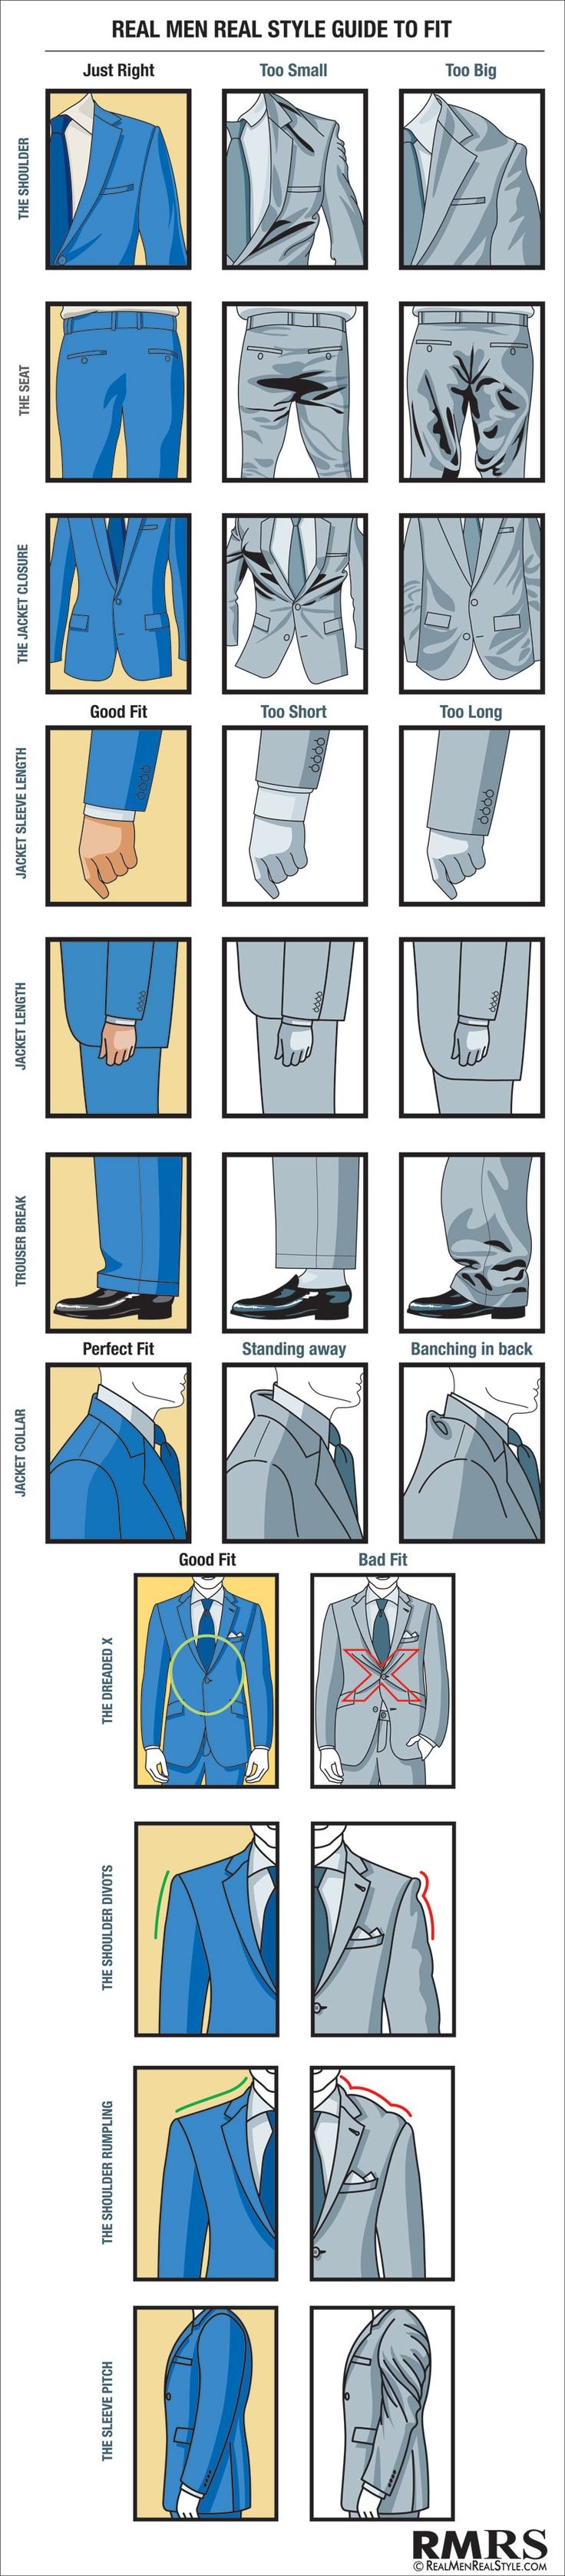 How A Man's Suit Should Fit – Visual Suit Fit Guide – Proper Fitting Suits Chart (via @Antonio Centeno)